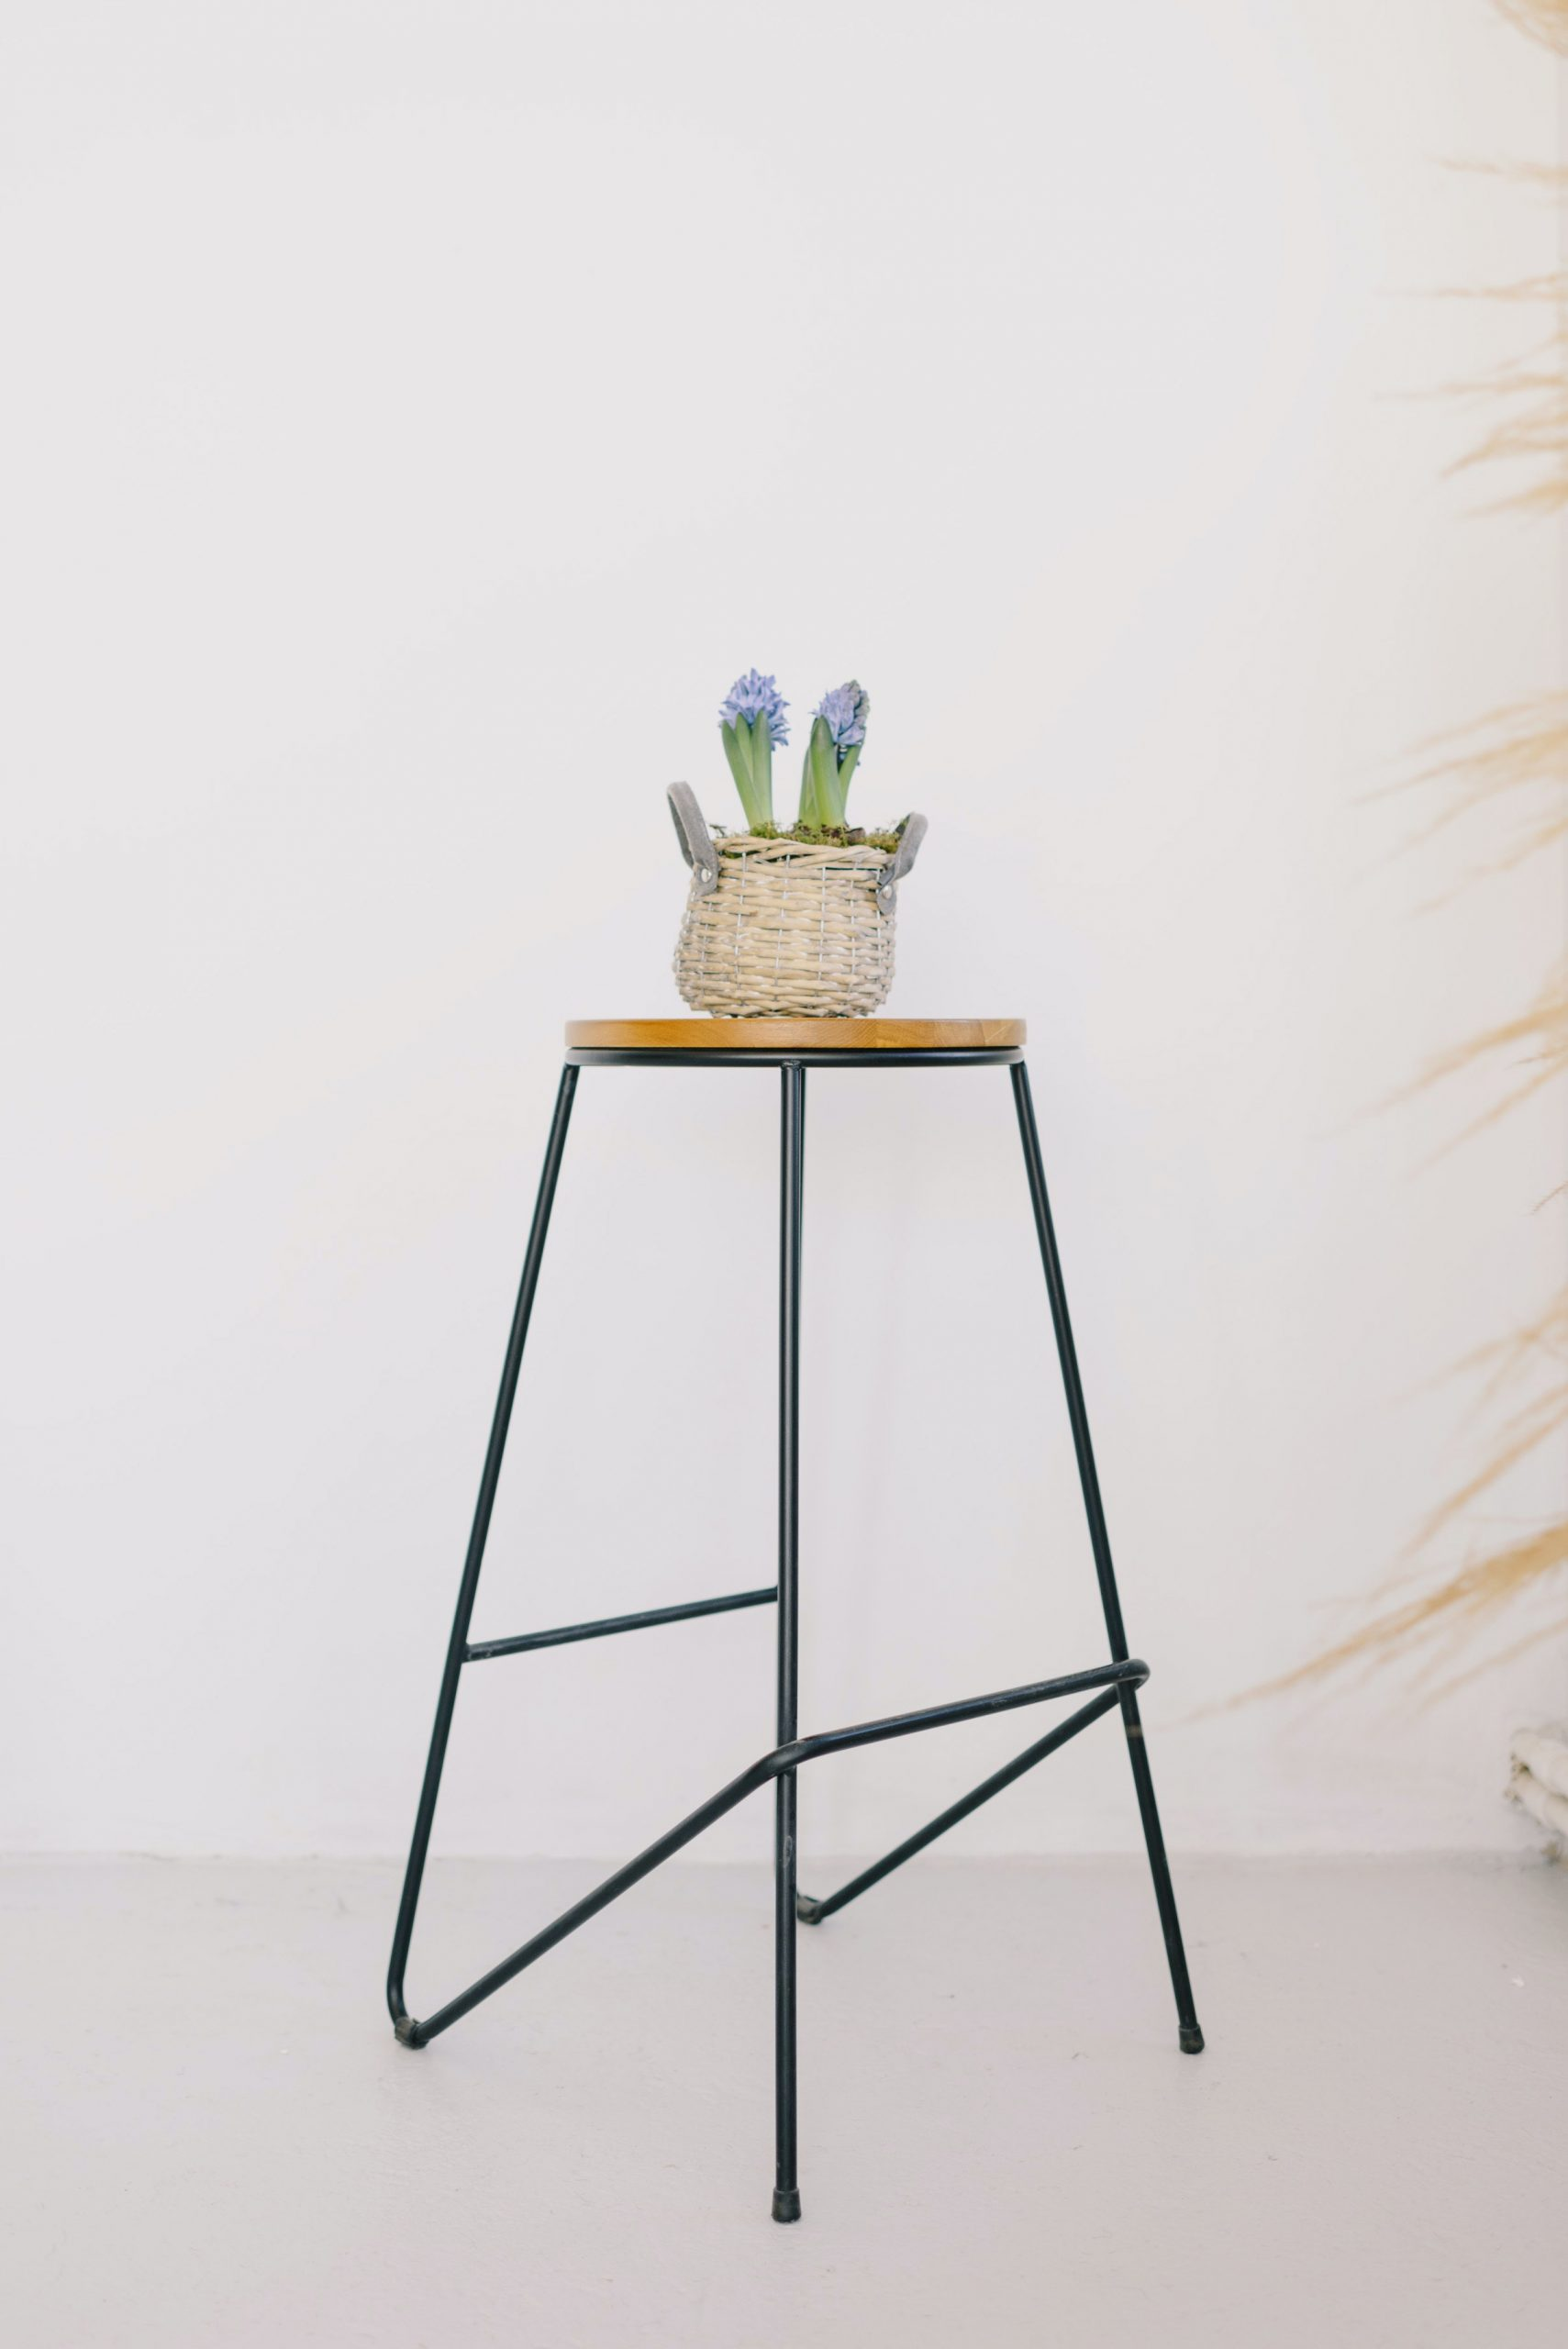 composition-of-stylish-chair-and-potted-crocus-flowers-4048758